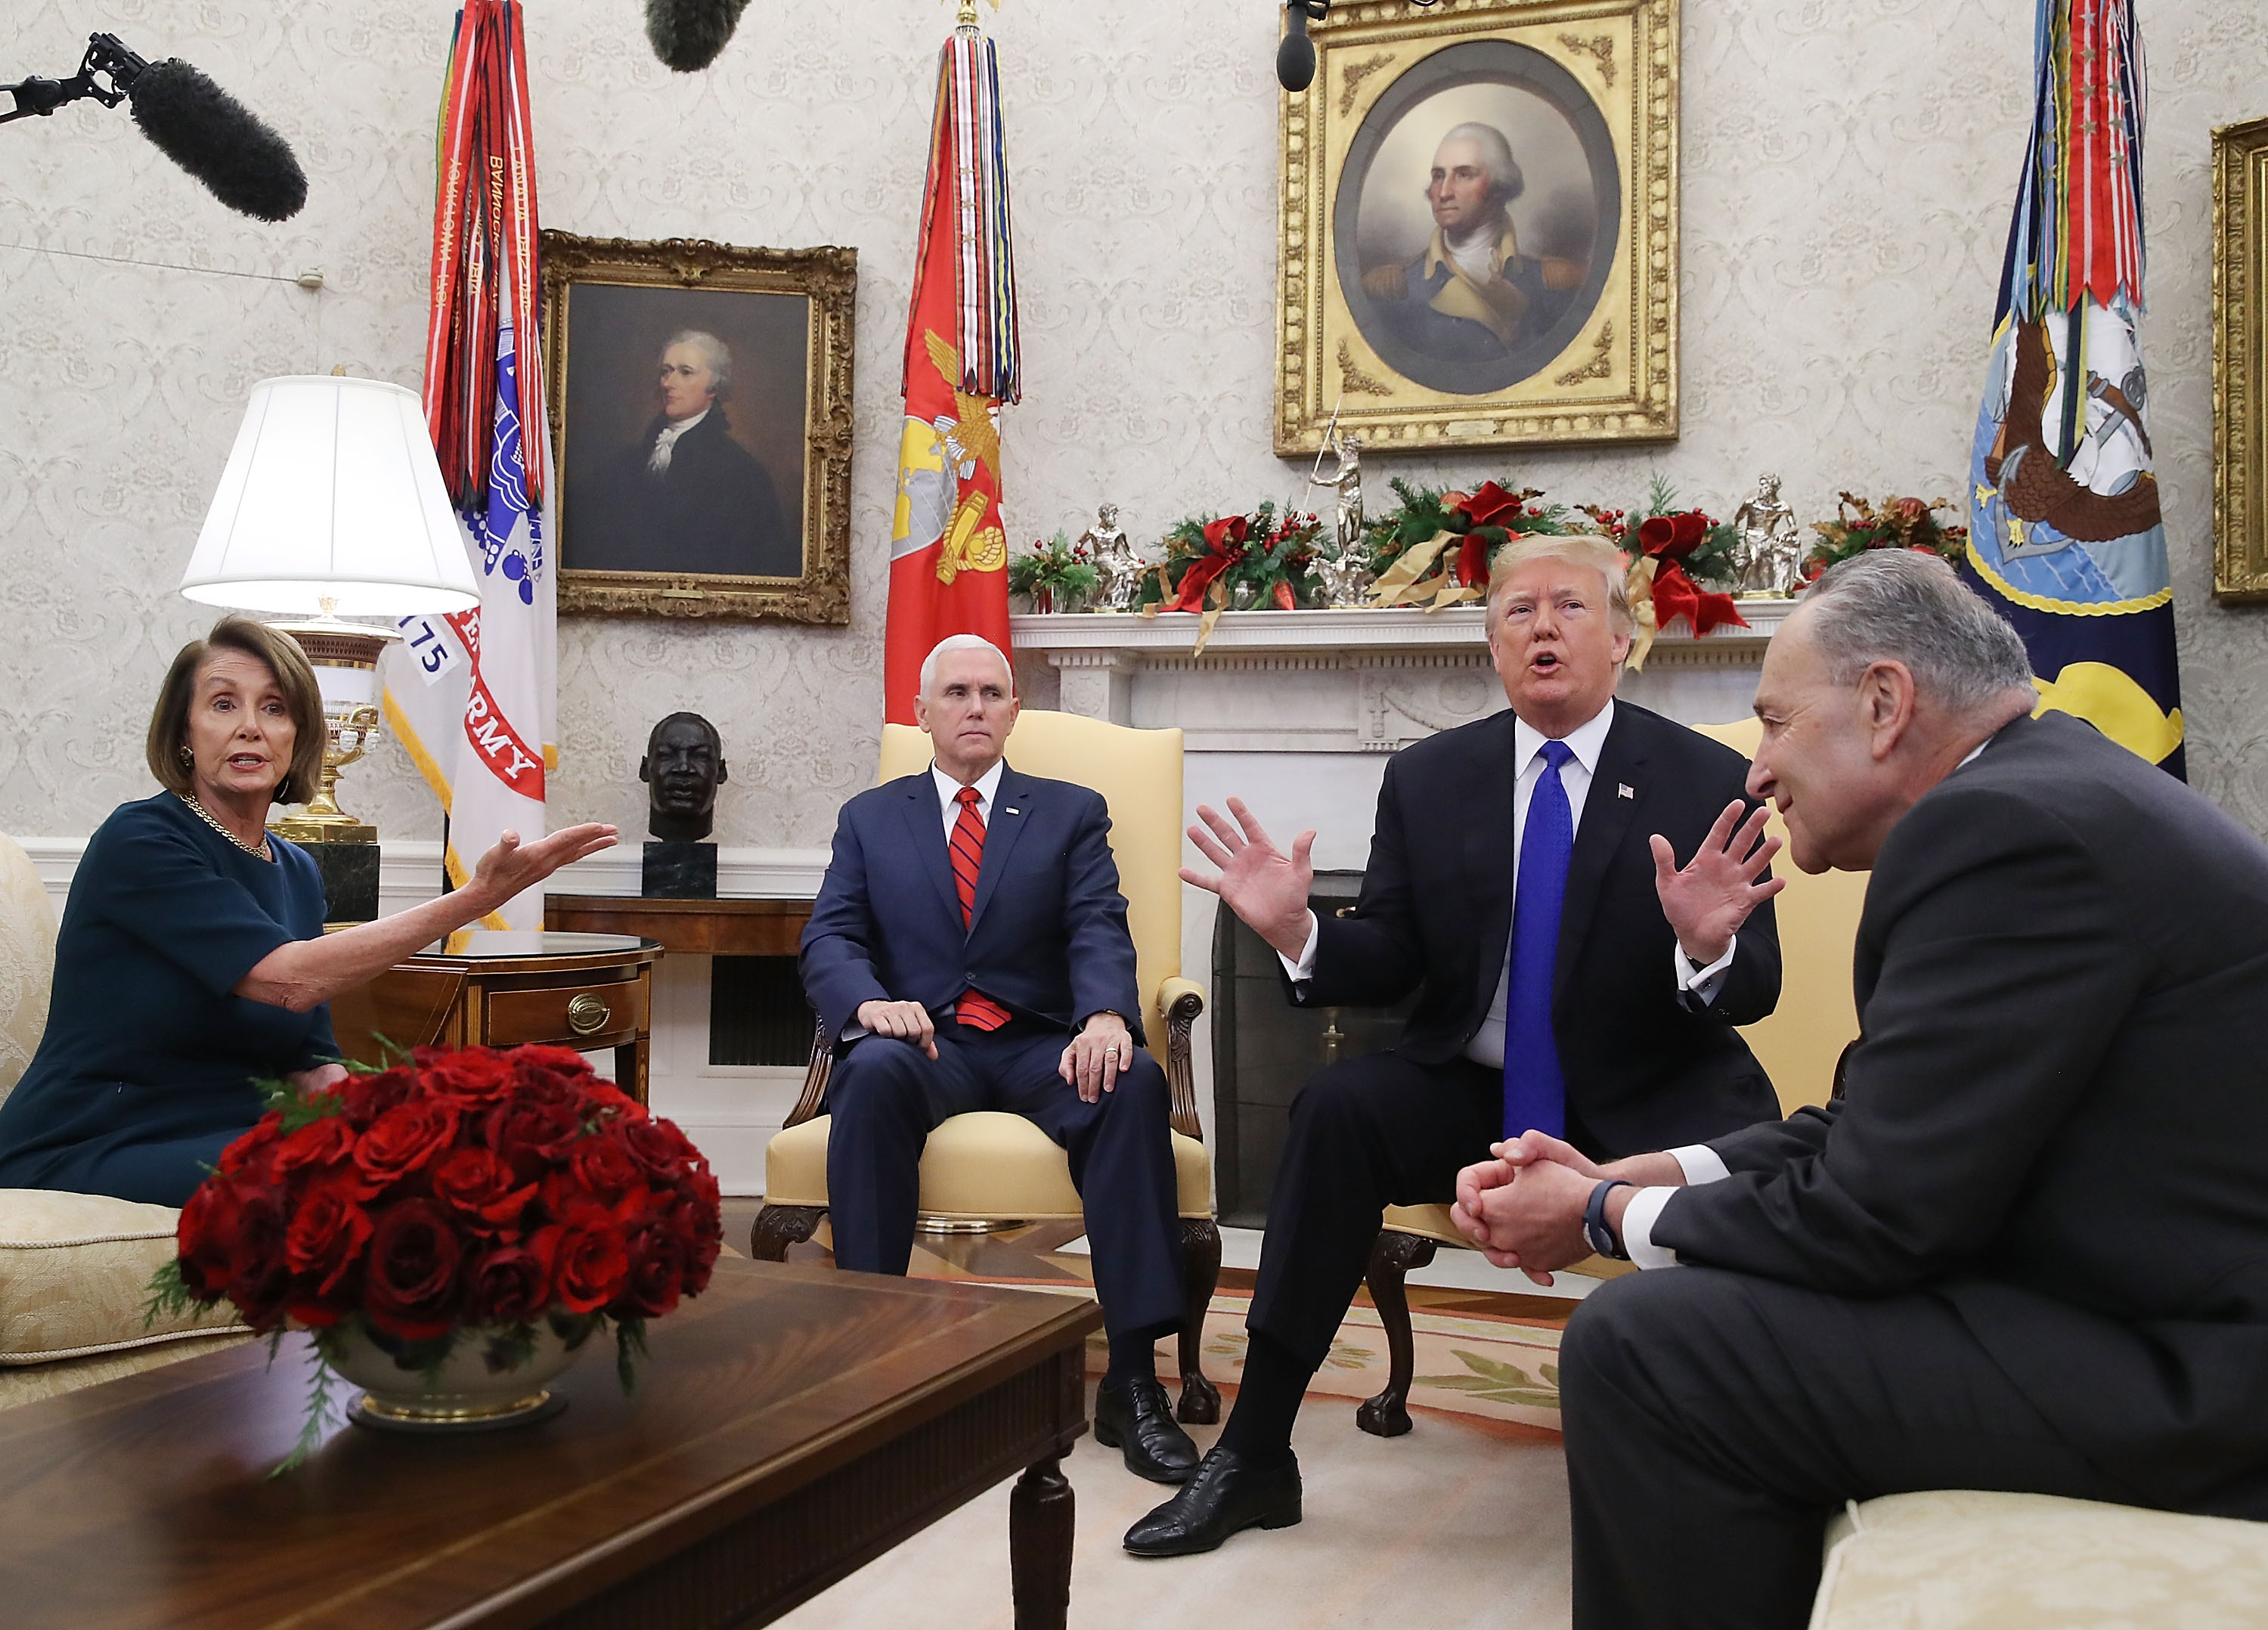 U.S. President Donald Trump (2R) argues about border security with Senate Minority Leader Chuck Schumer (D-NY) (R) and House Minority Leader Nancy Pelosi (D-CA) as Vice President Mike Pence sits nearby in the Oval Office on December 11, 2018 in Washington, DC. (Getty Images)